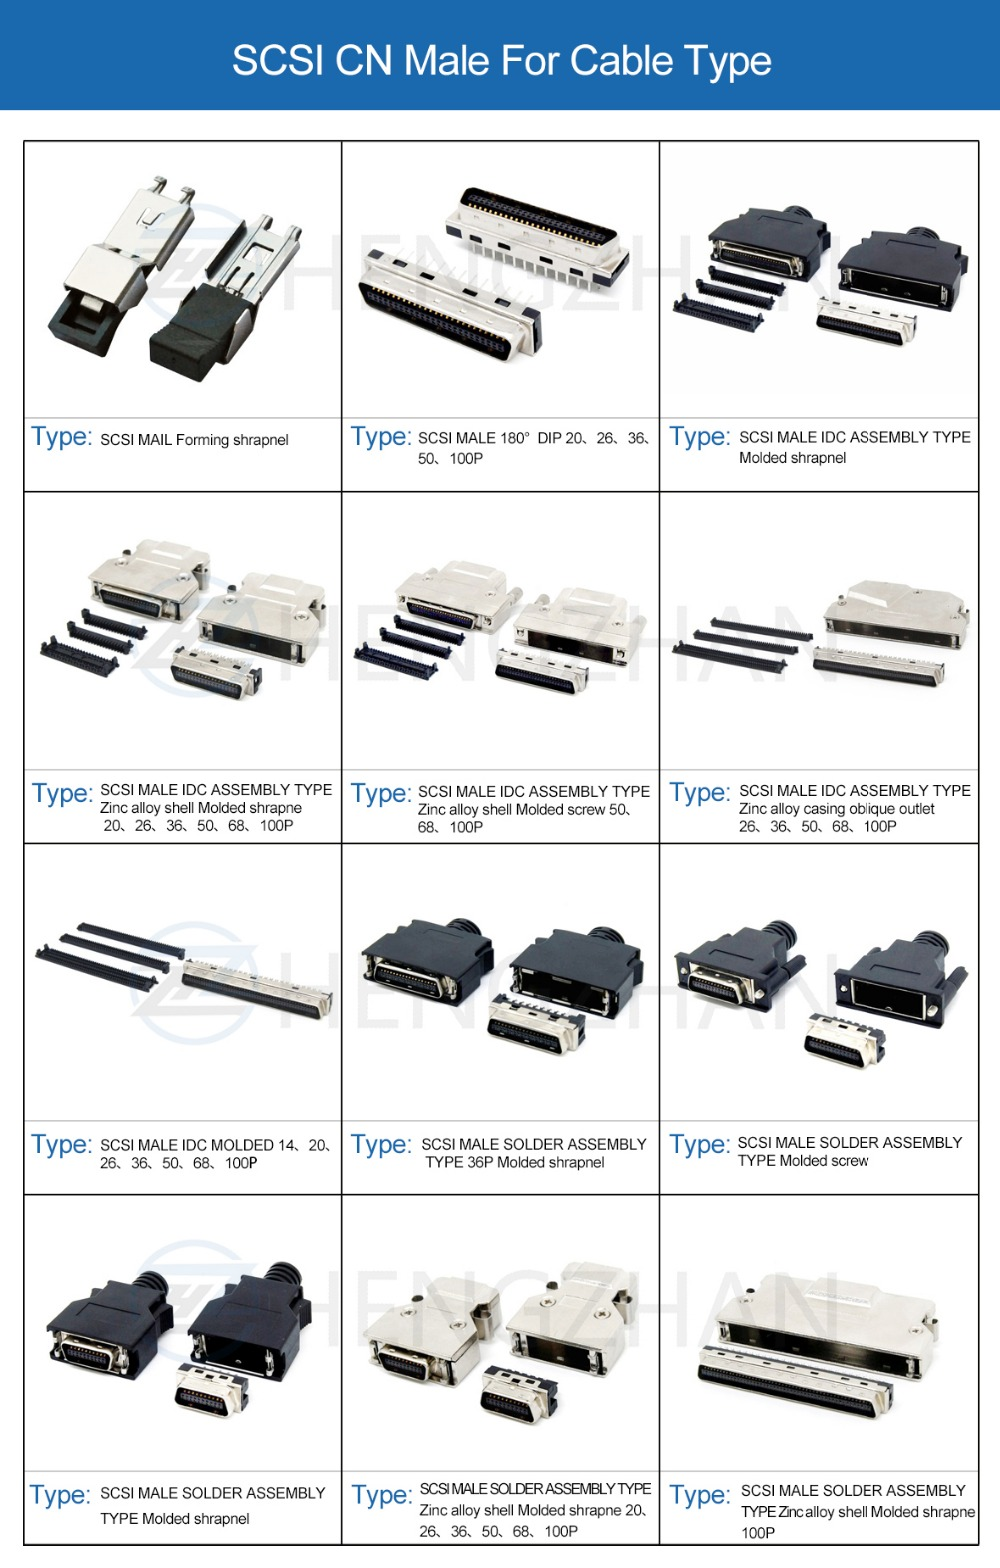 SCSI CN Male For Cable Type(1).jpg